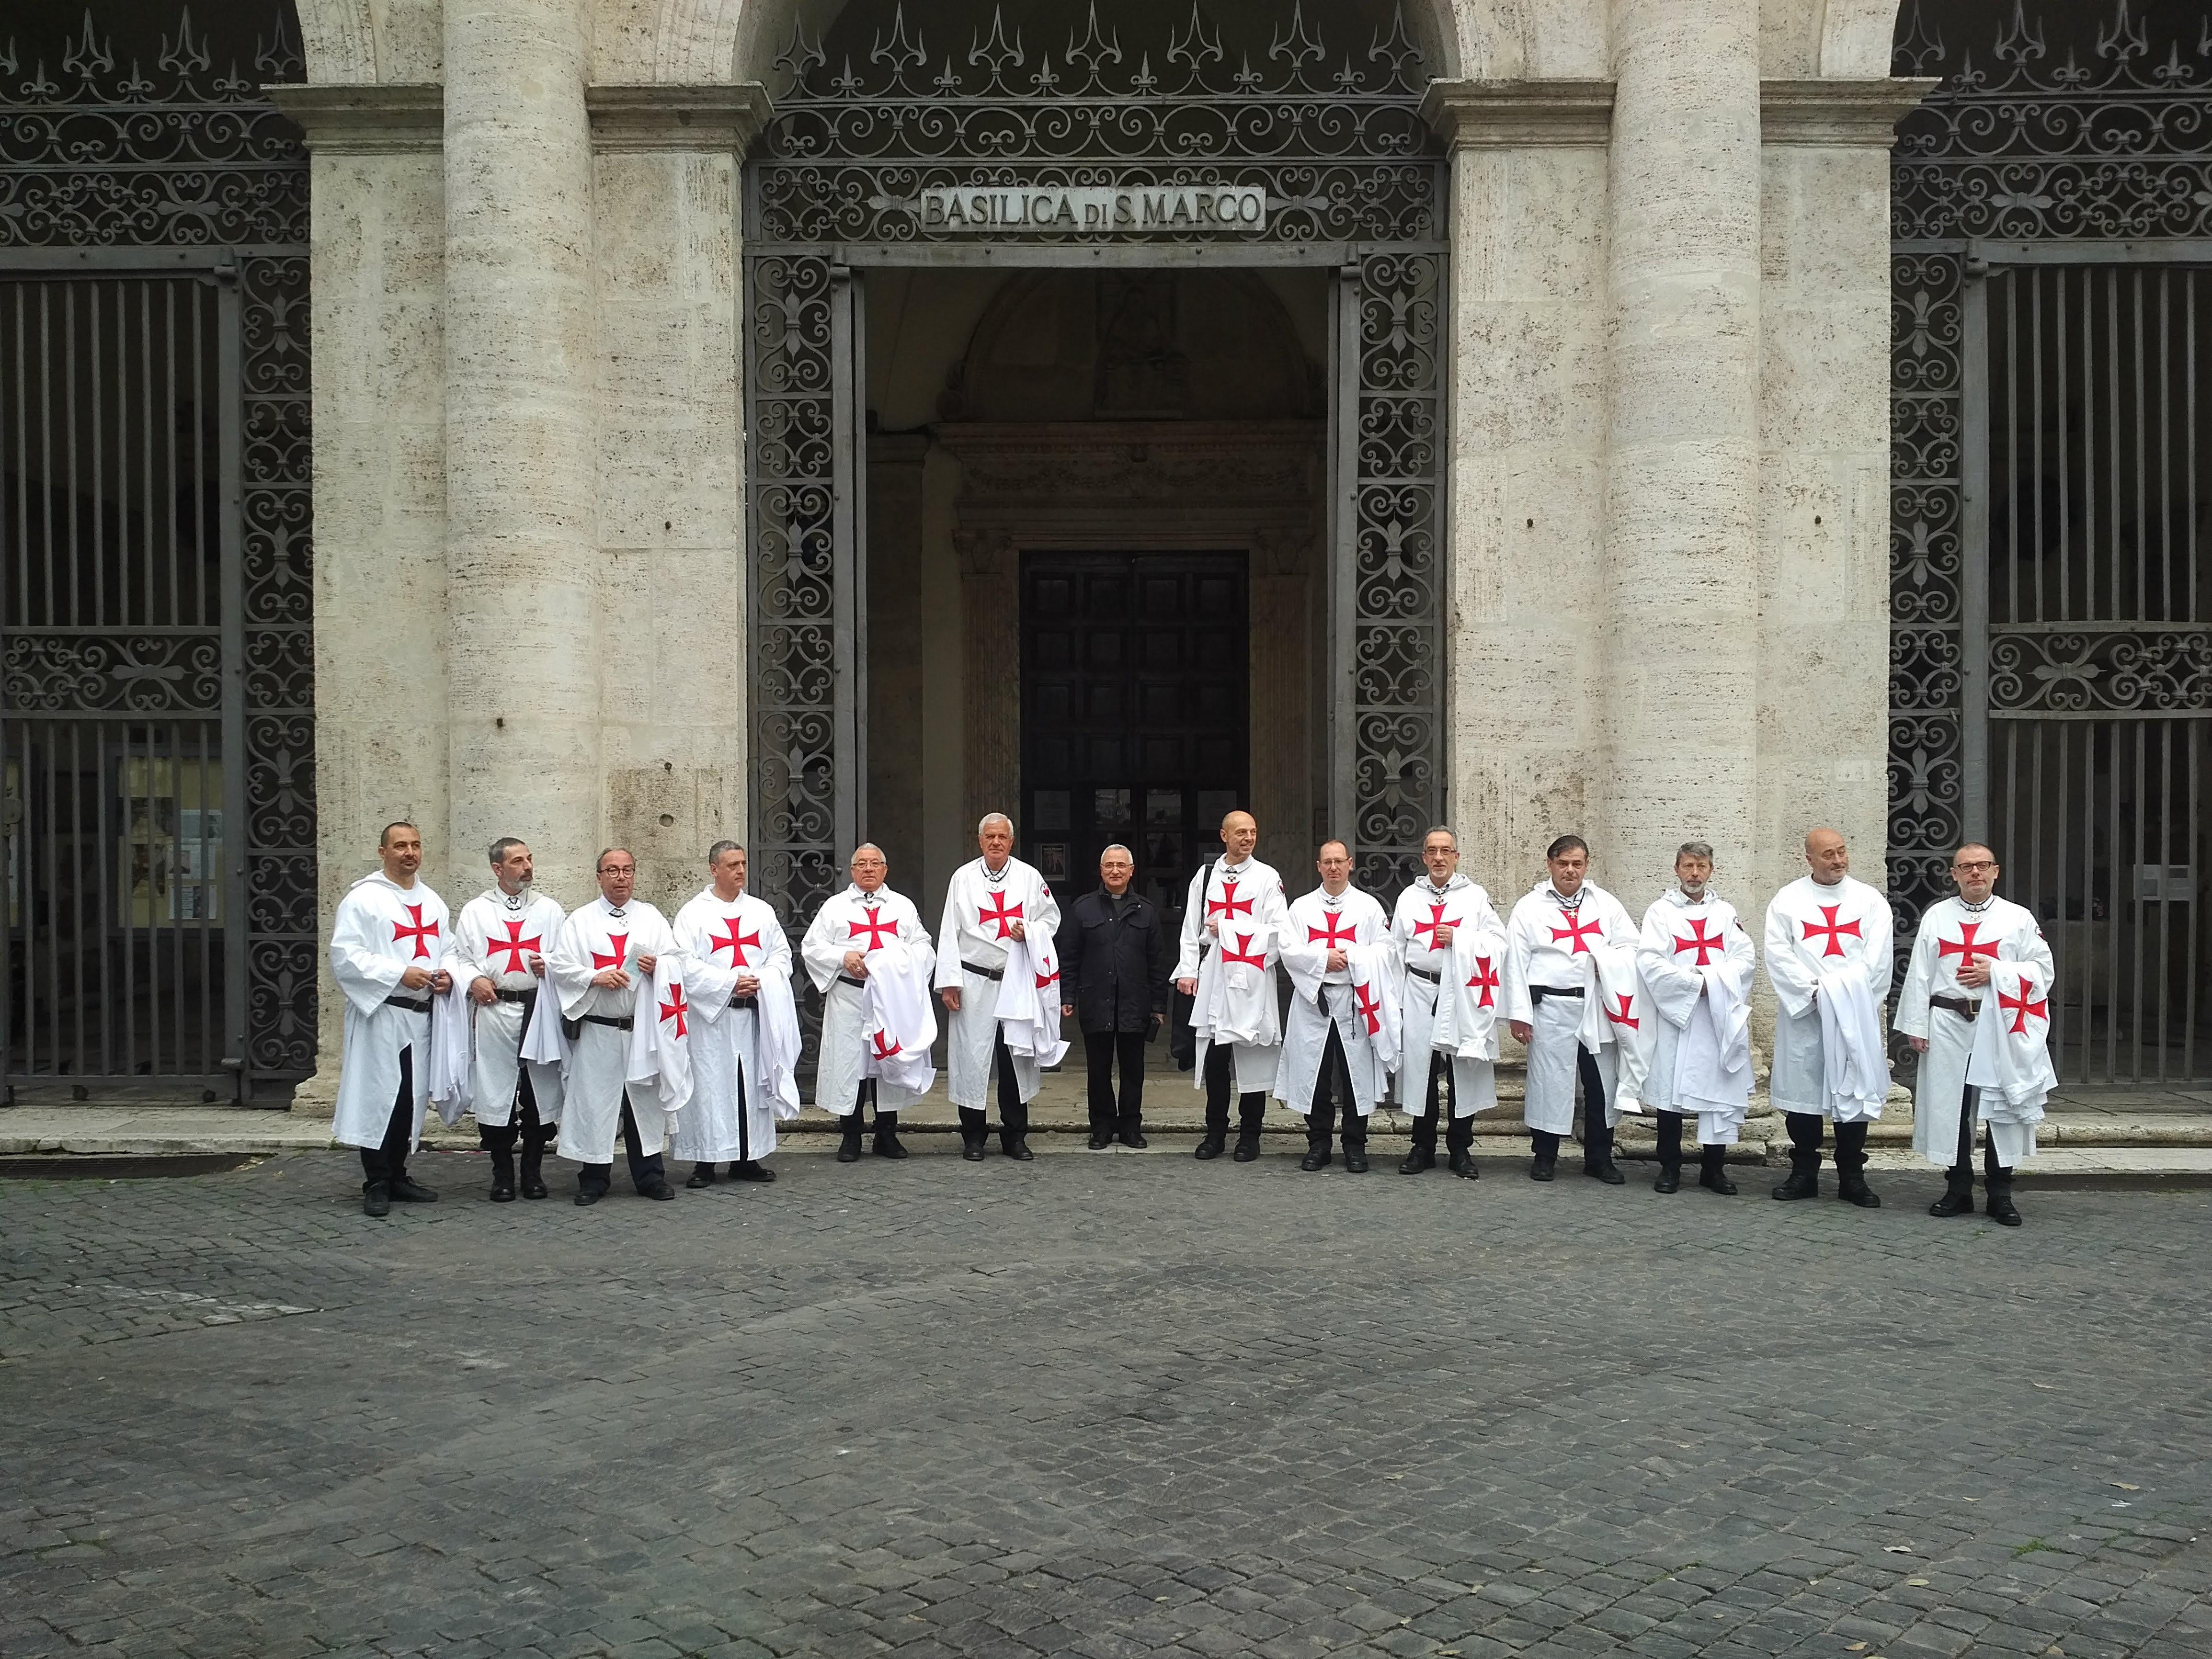 Custody of 5 Basilicas in the center of Rome – 14th and 15th April 2018